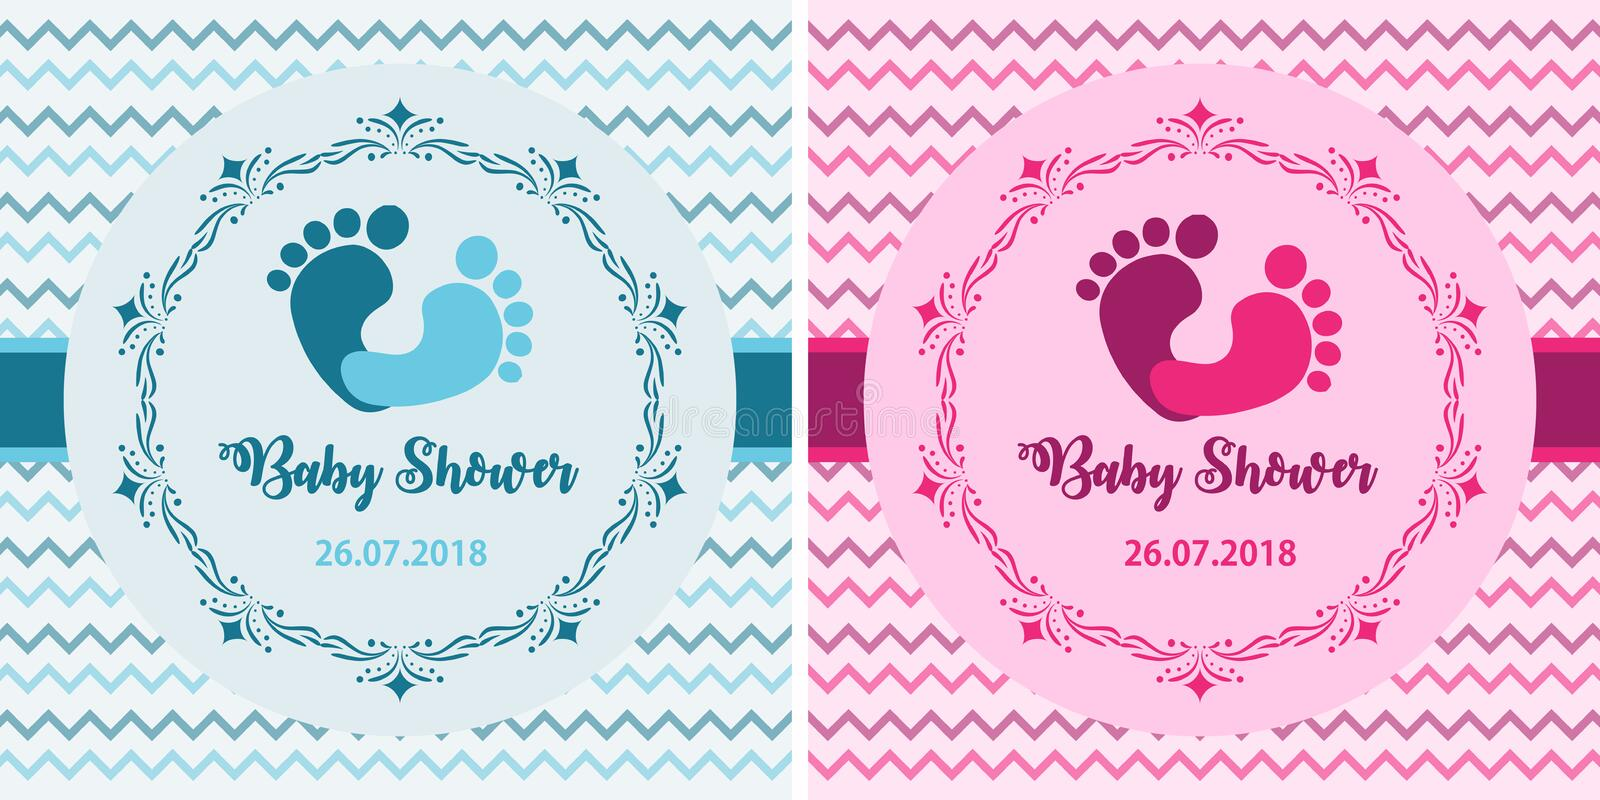 Baby shower set. Cute invitation cards design for baby shower party. Template design for girl and boy royalty free illustration